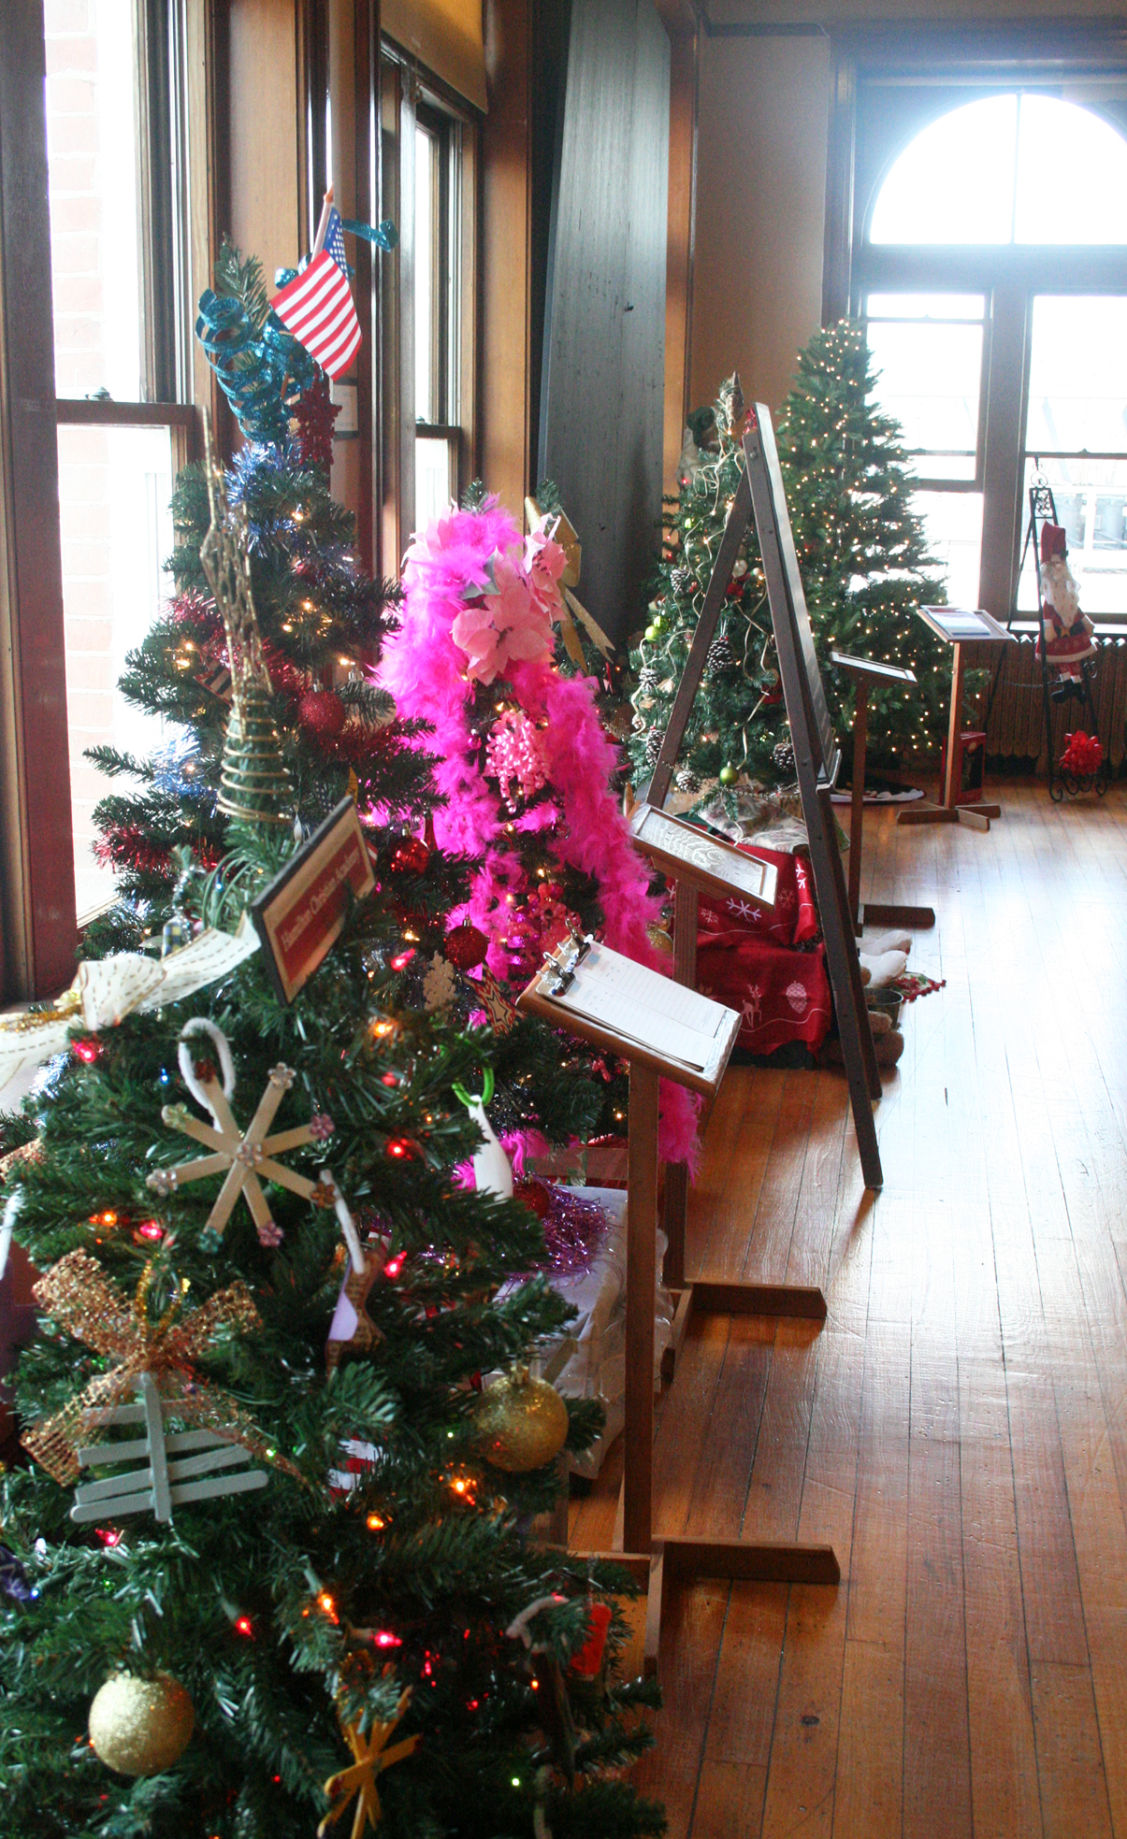 Music for the holidays: Museum to host Gallery of Trees and Baroque event